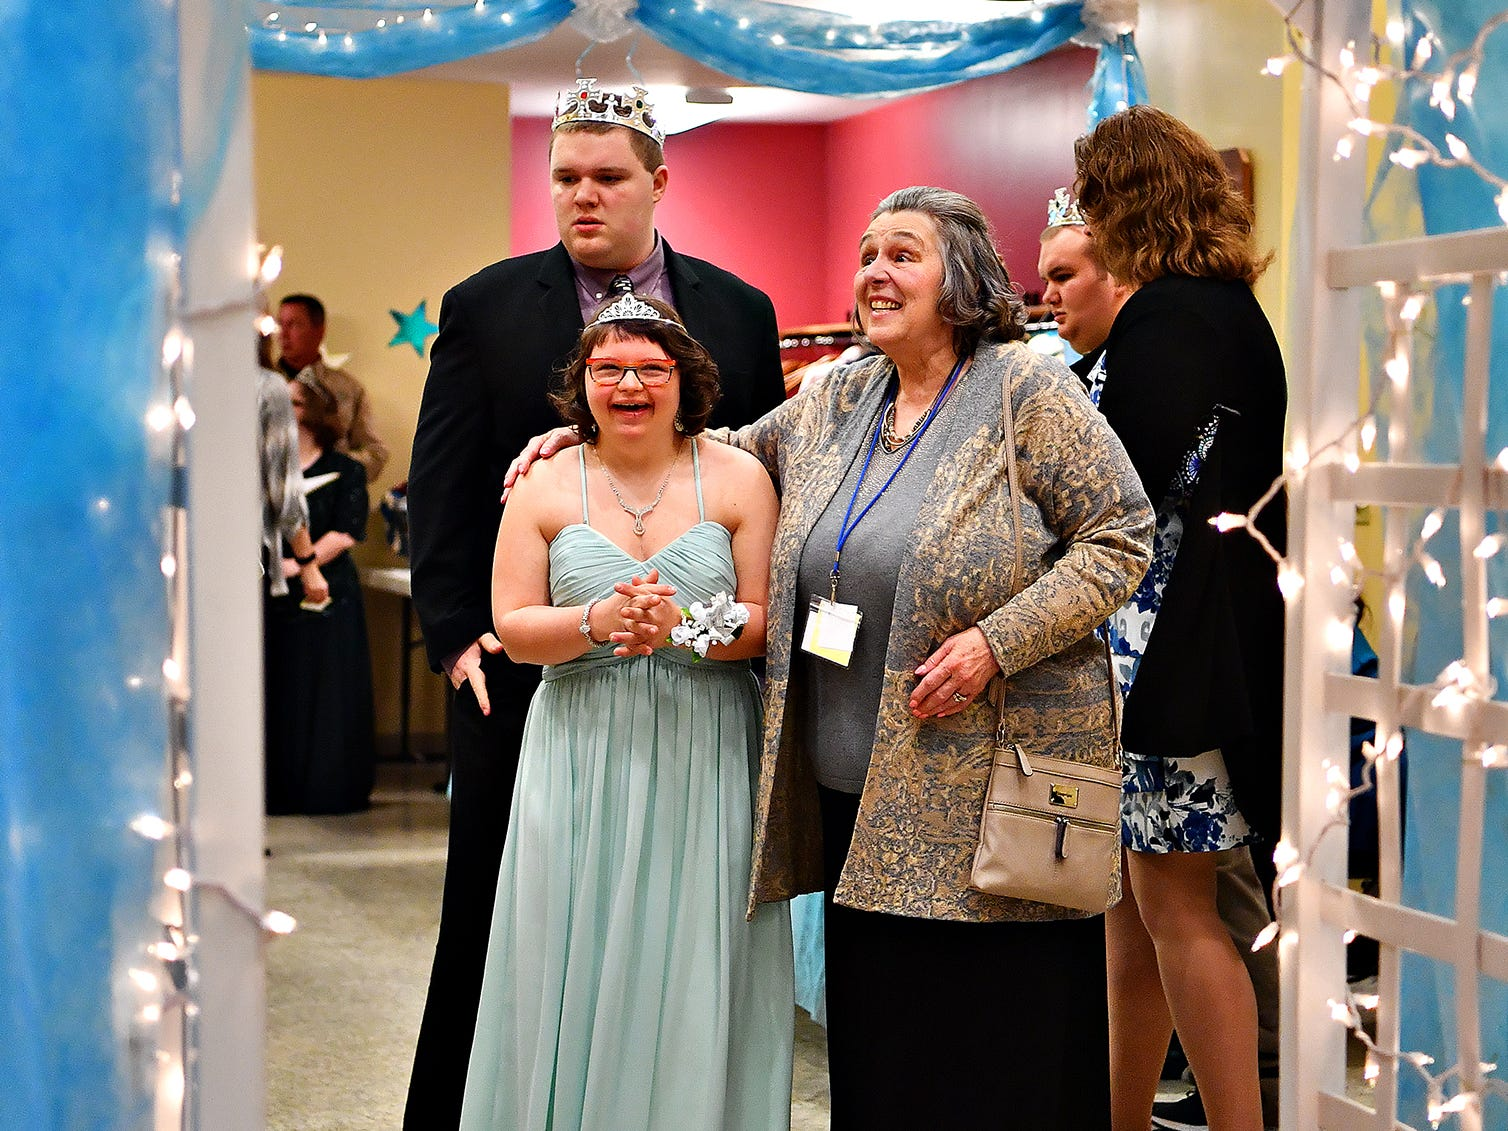 Casey Duncan, 17, left, of New Freedom, waits excitedly with her buddy for the night, Susan Mattern, of York City, as she prepares for make her red carpet entrance during A Night to Shine, a Tim Tebow Foundation sponsored prom for people with special needs, at Friendship Community Church in Dover Friday, Feb. 8, 2019. Dawn J. Sagert photo